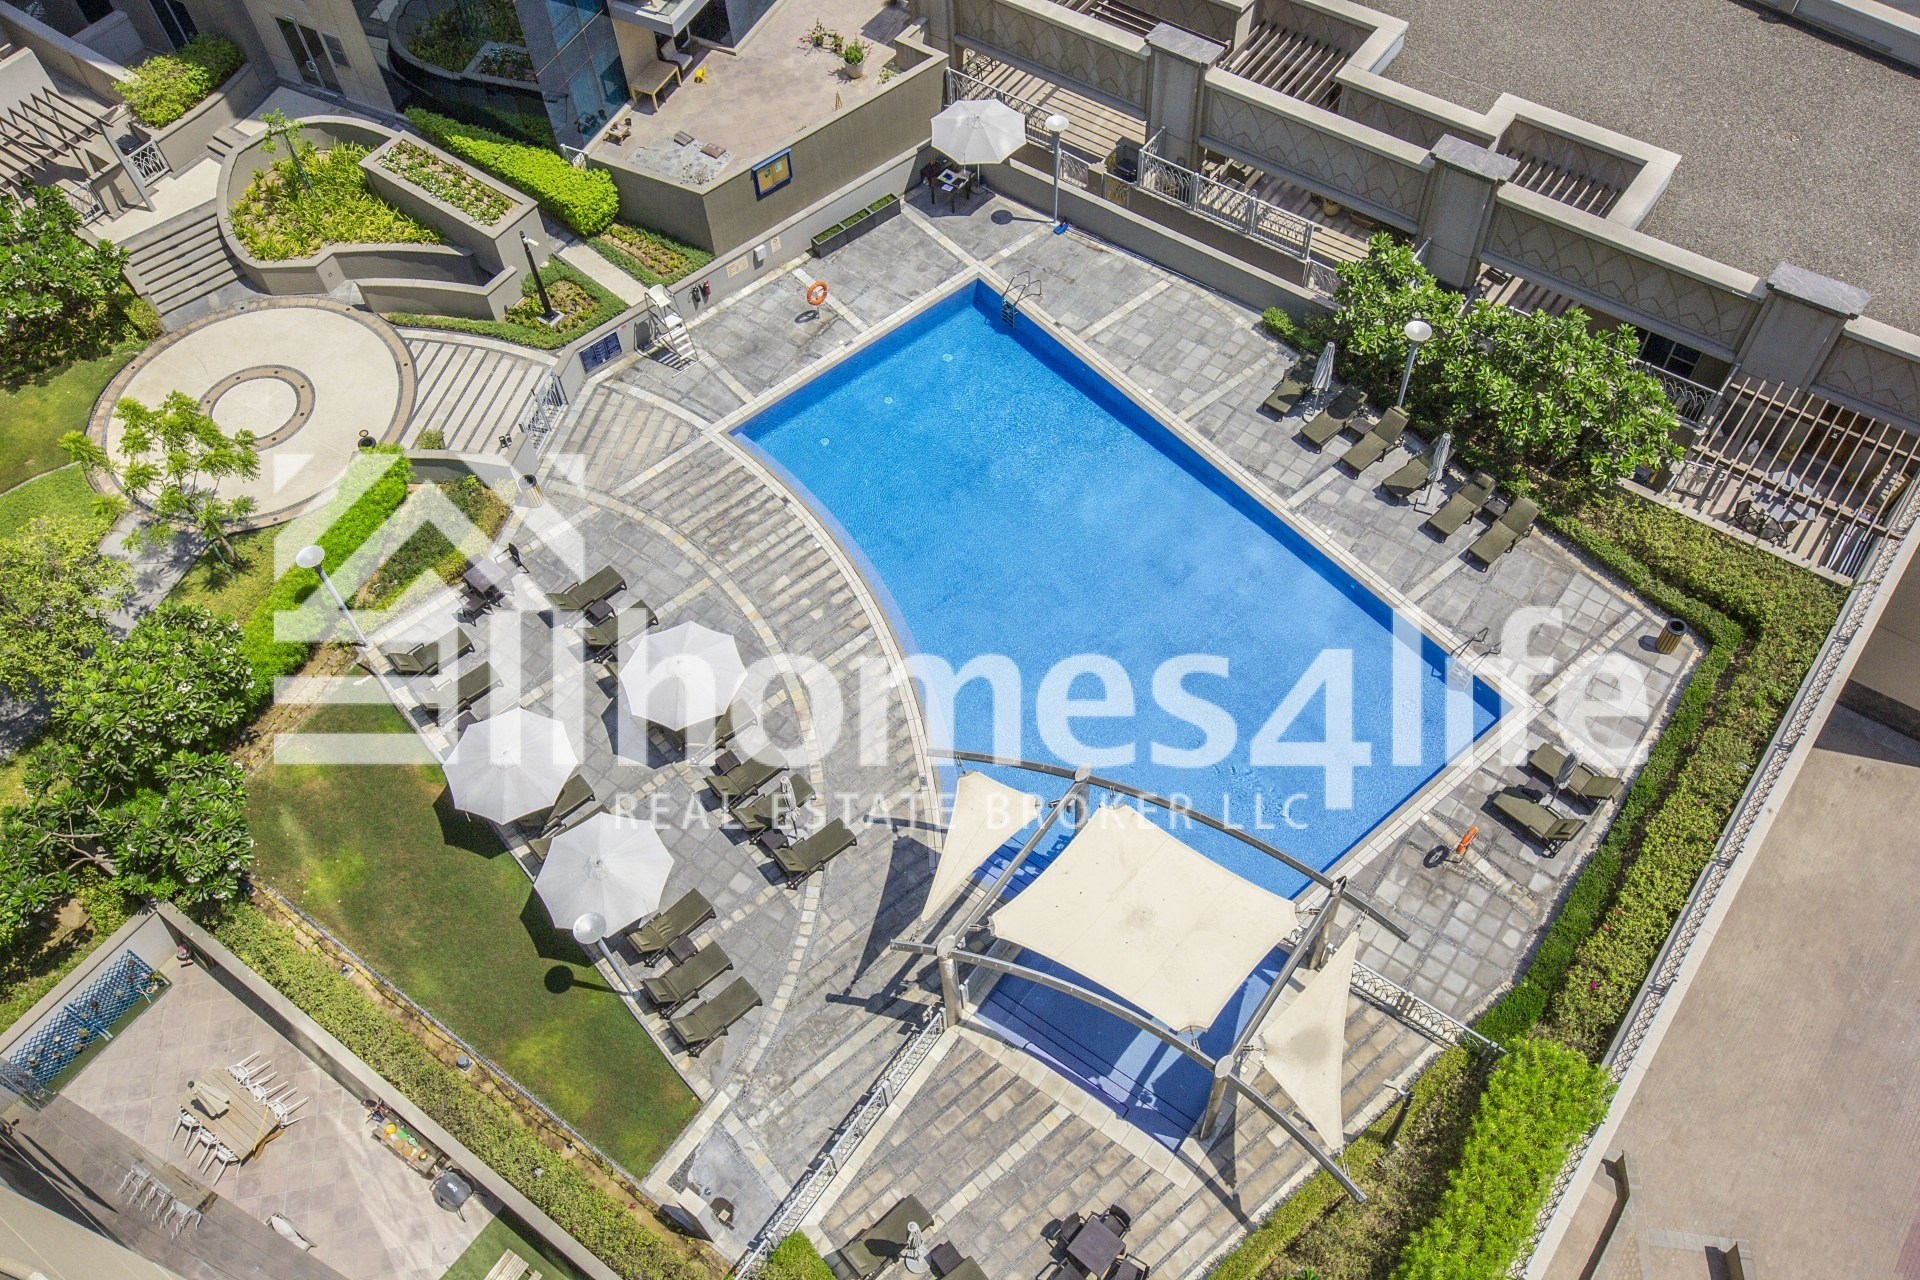 1 Bedroom | Pool View | Marina Promenade